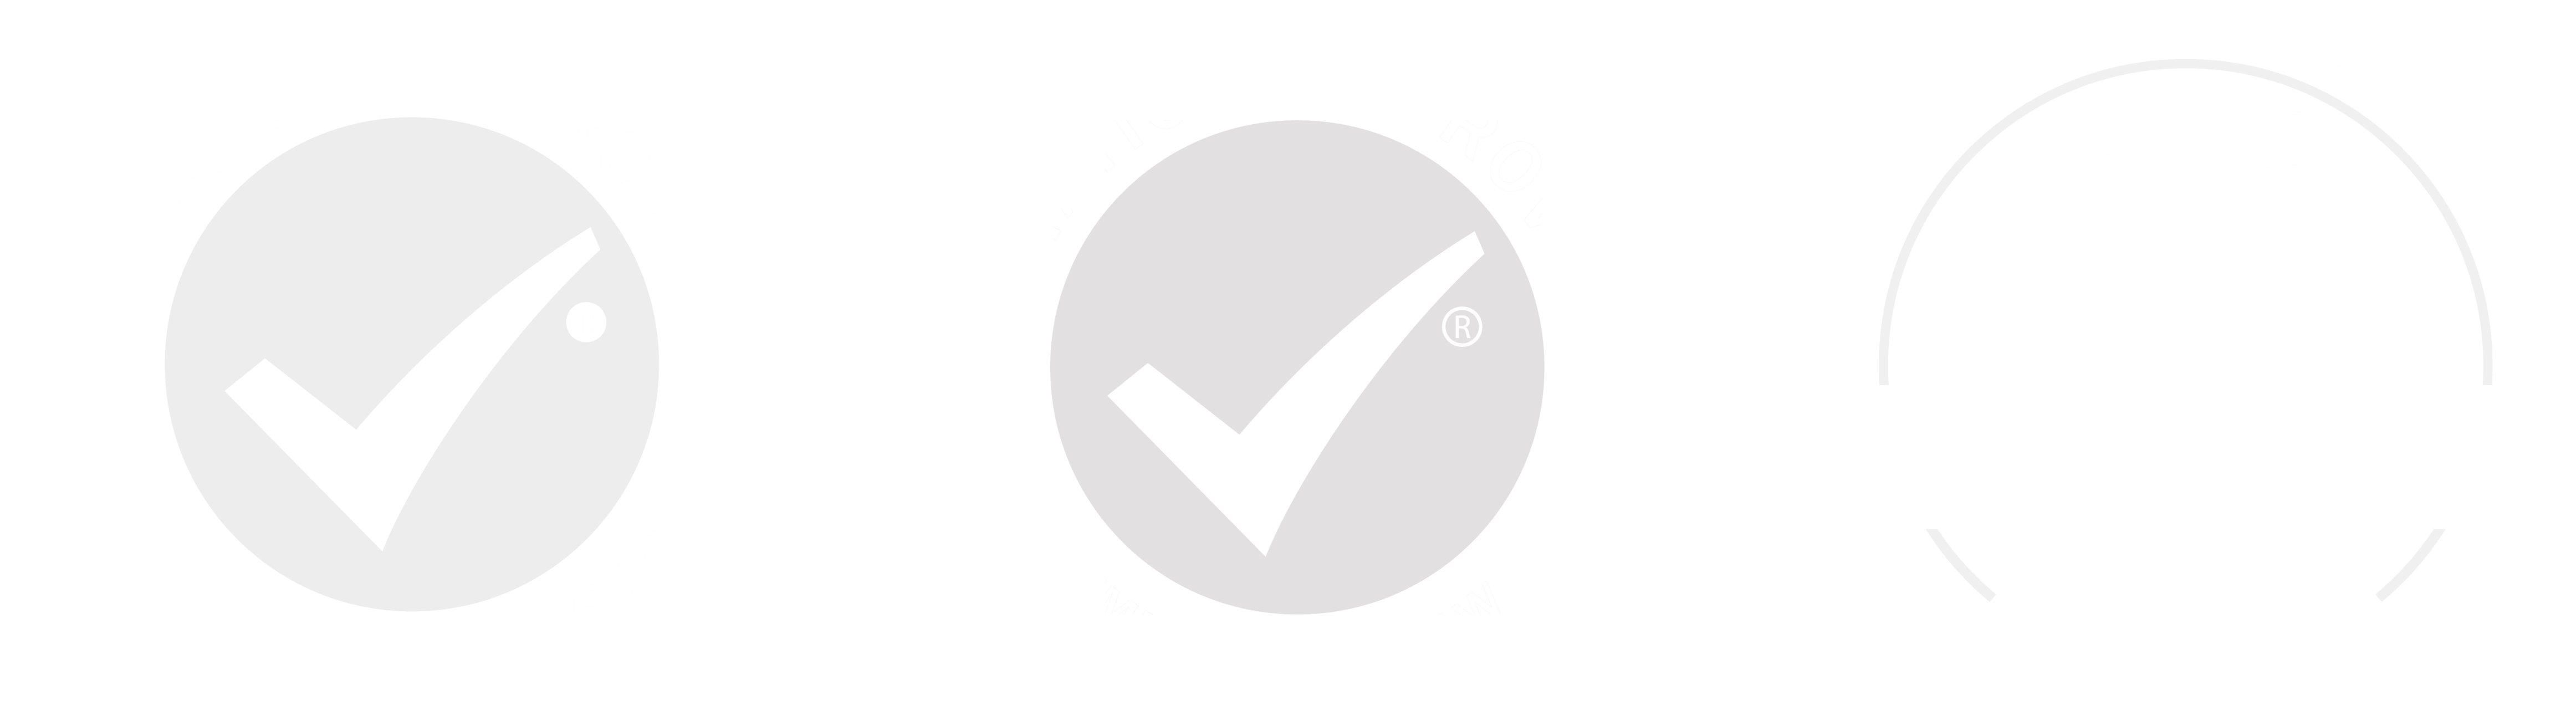 We are certified